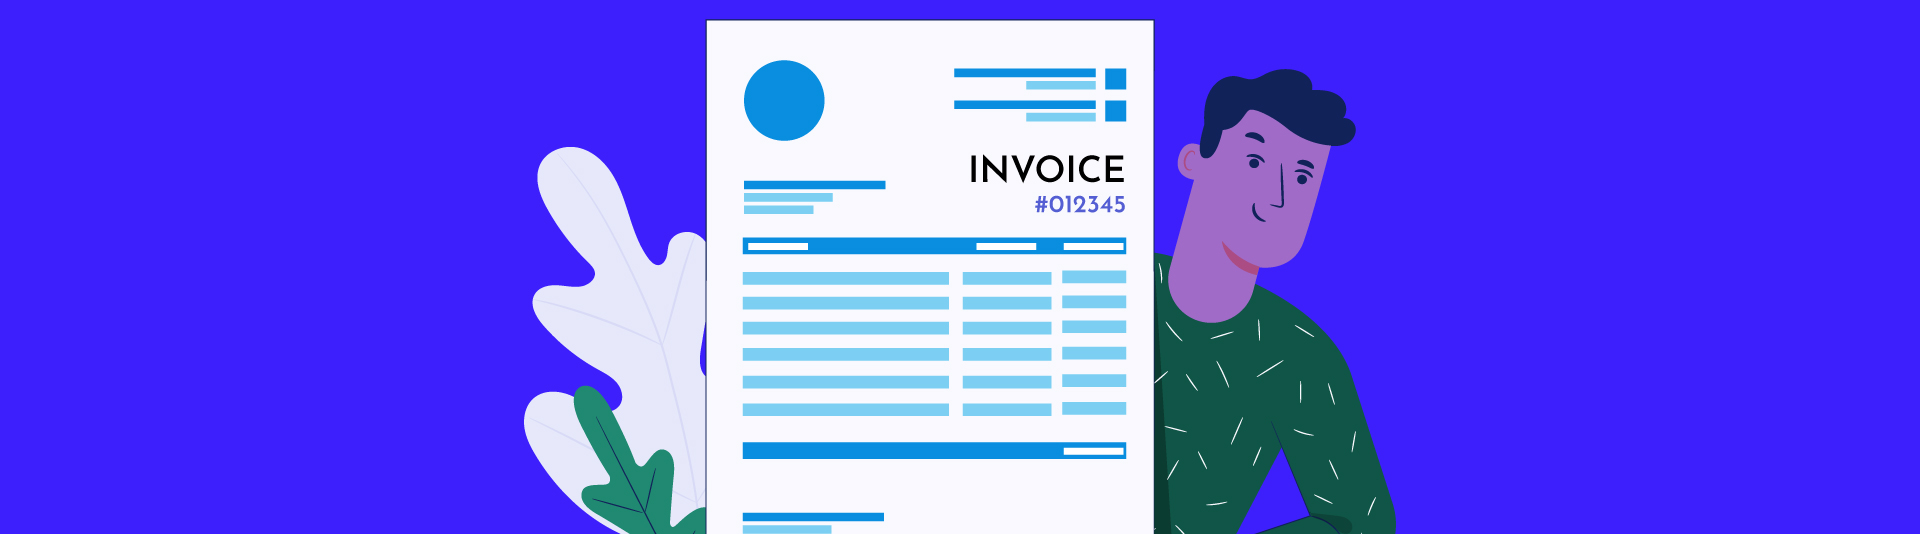 invoice in excel (cover)